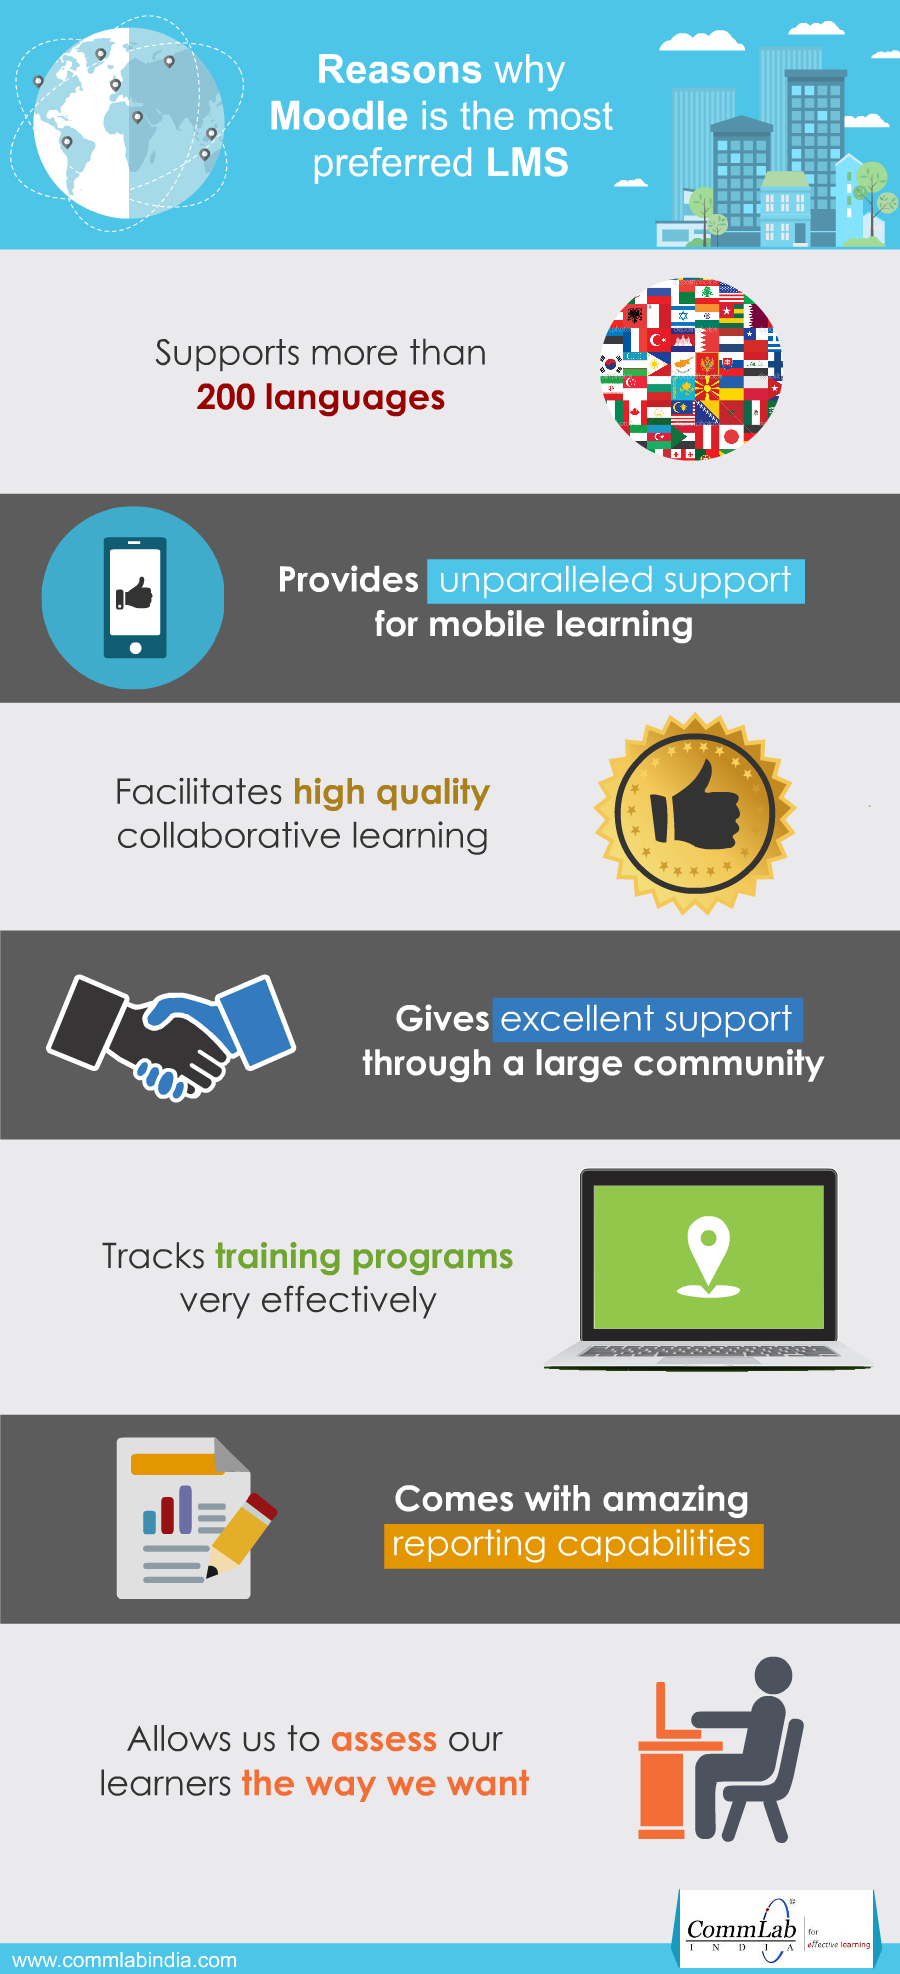 MOODLE - What Makes This LMS Very  Popular [Infographic]